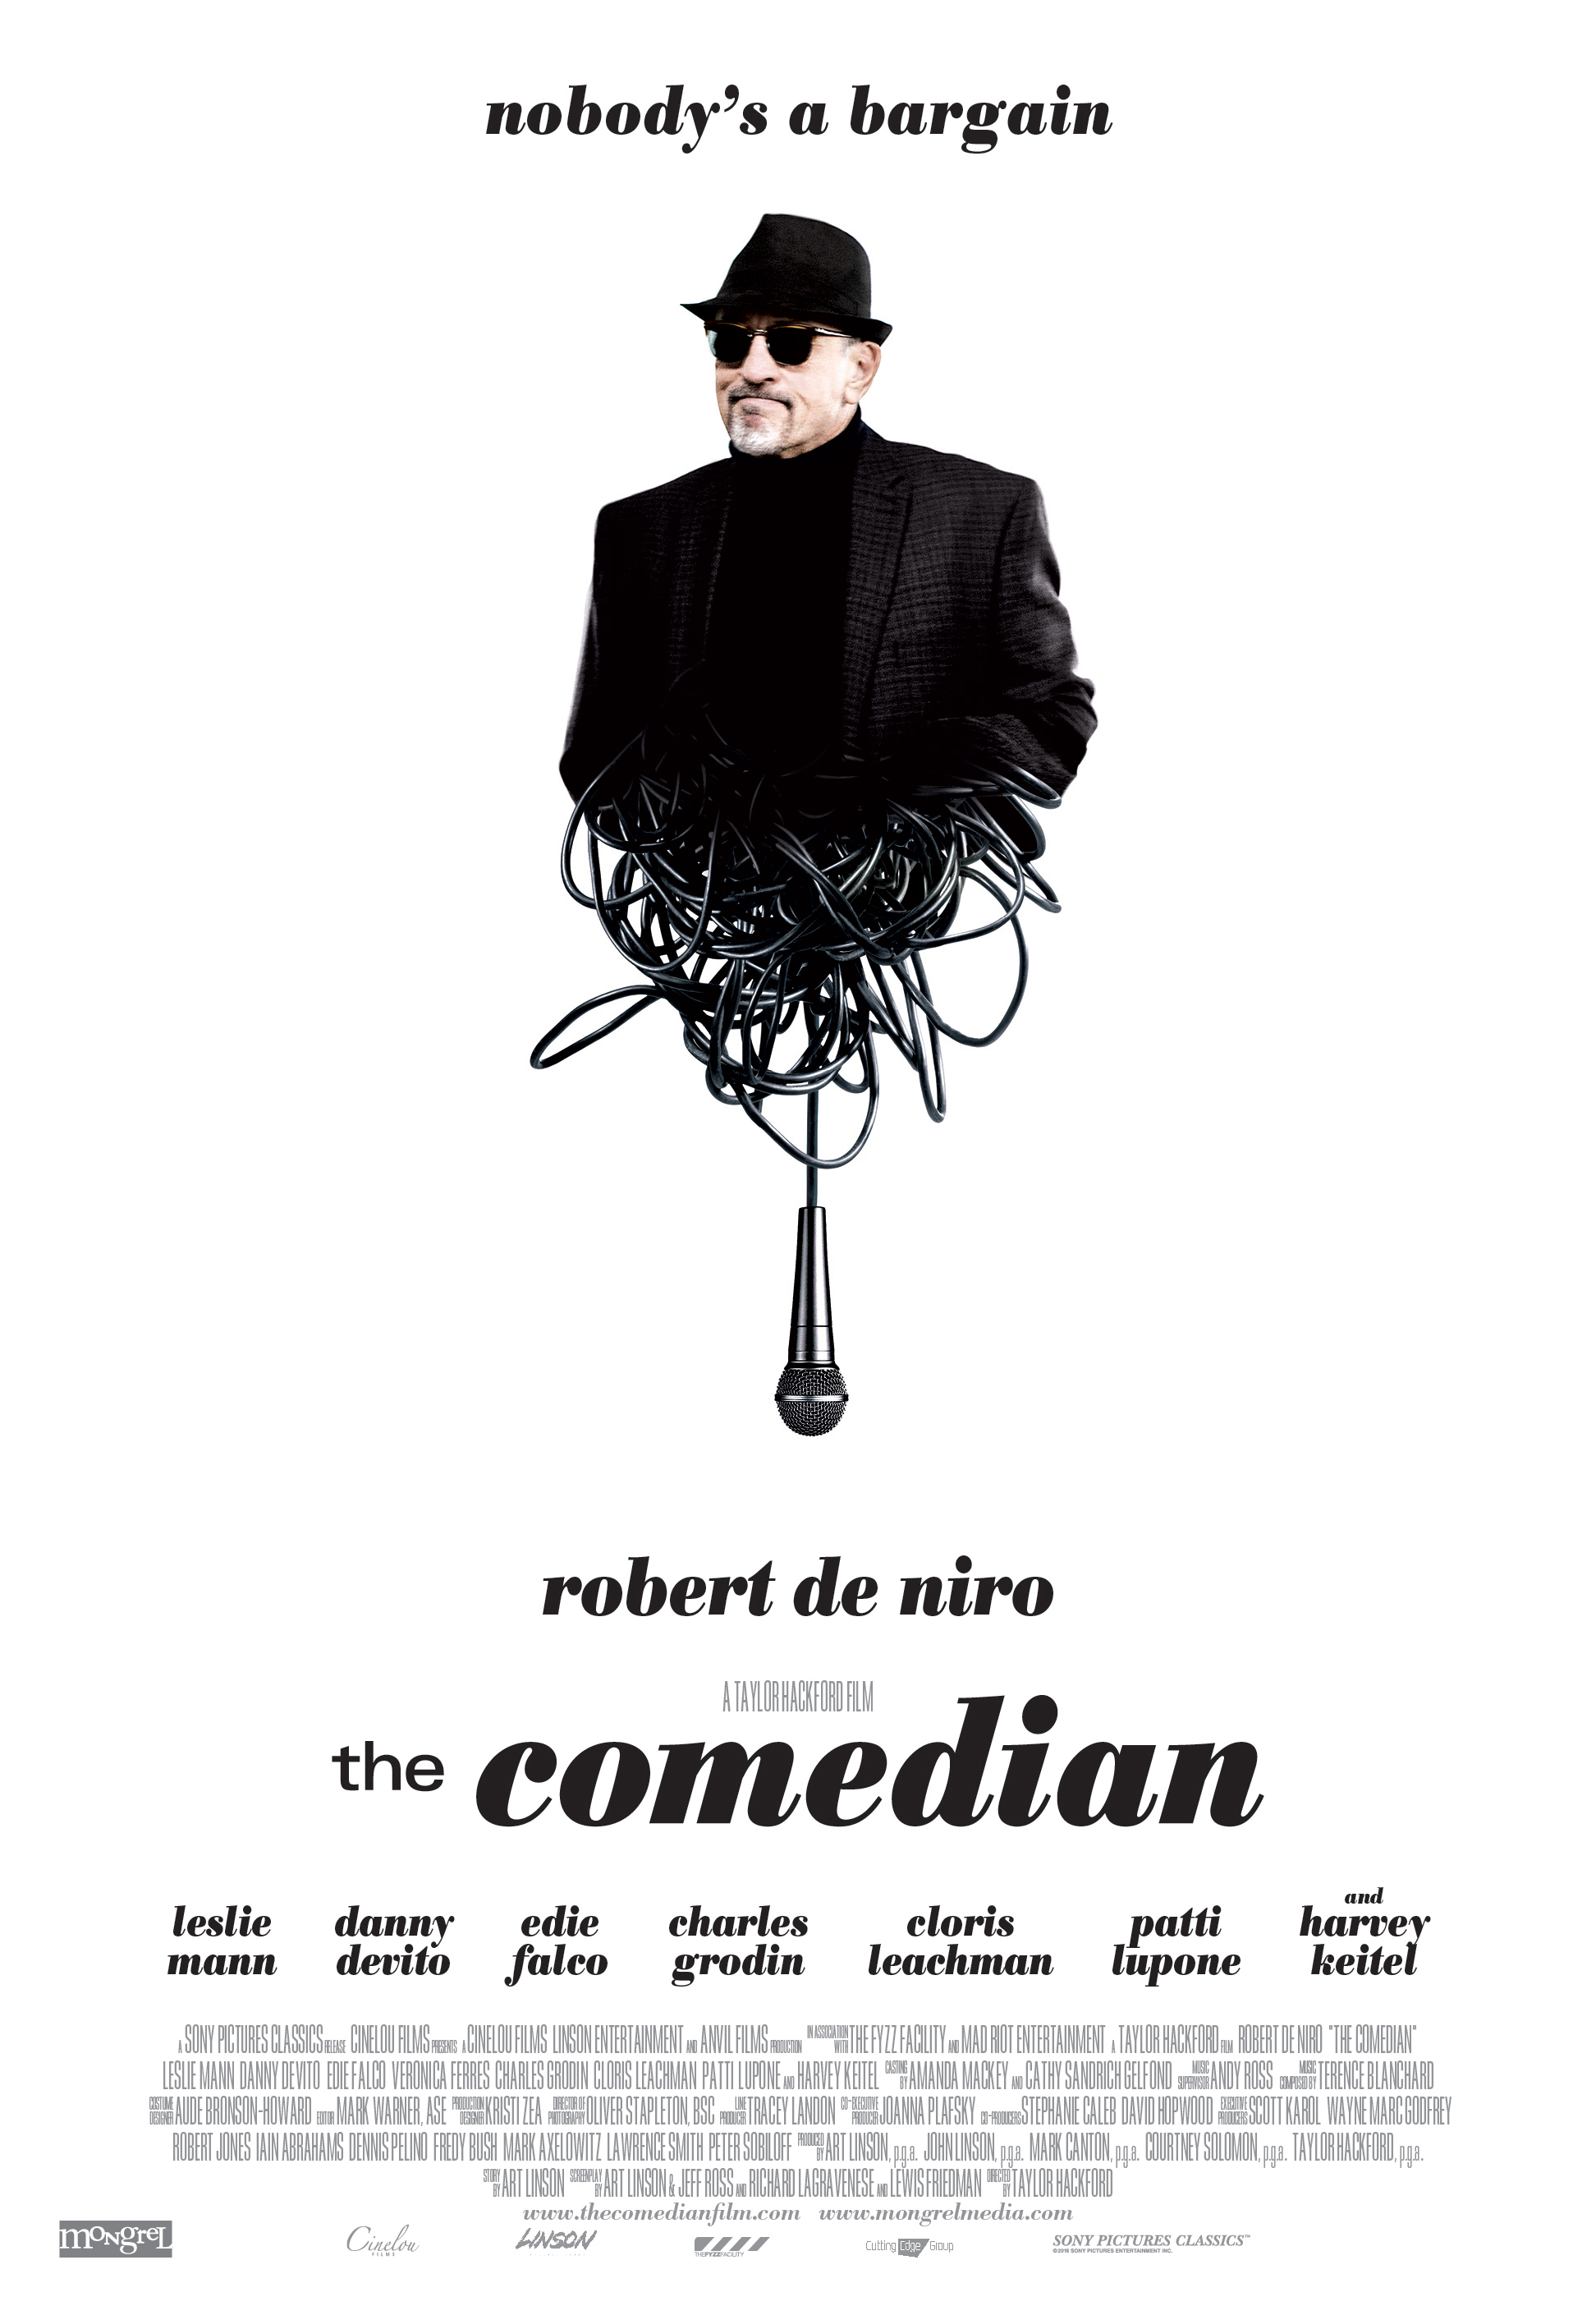 Comedian, The